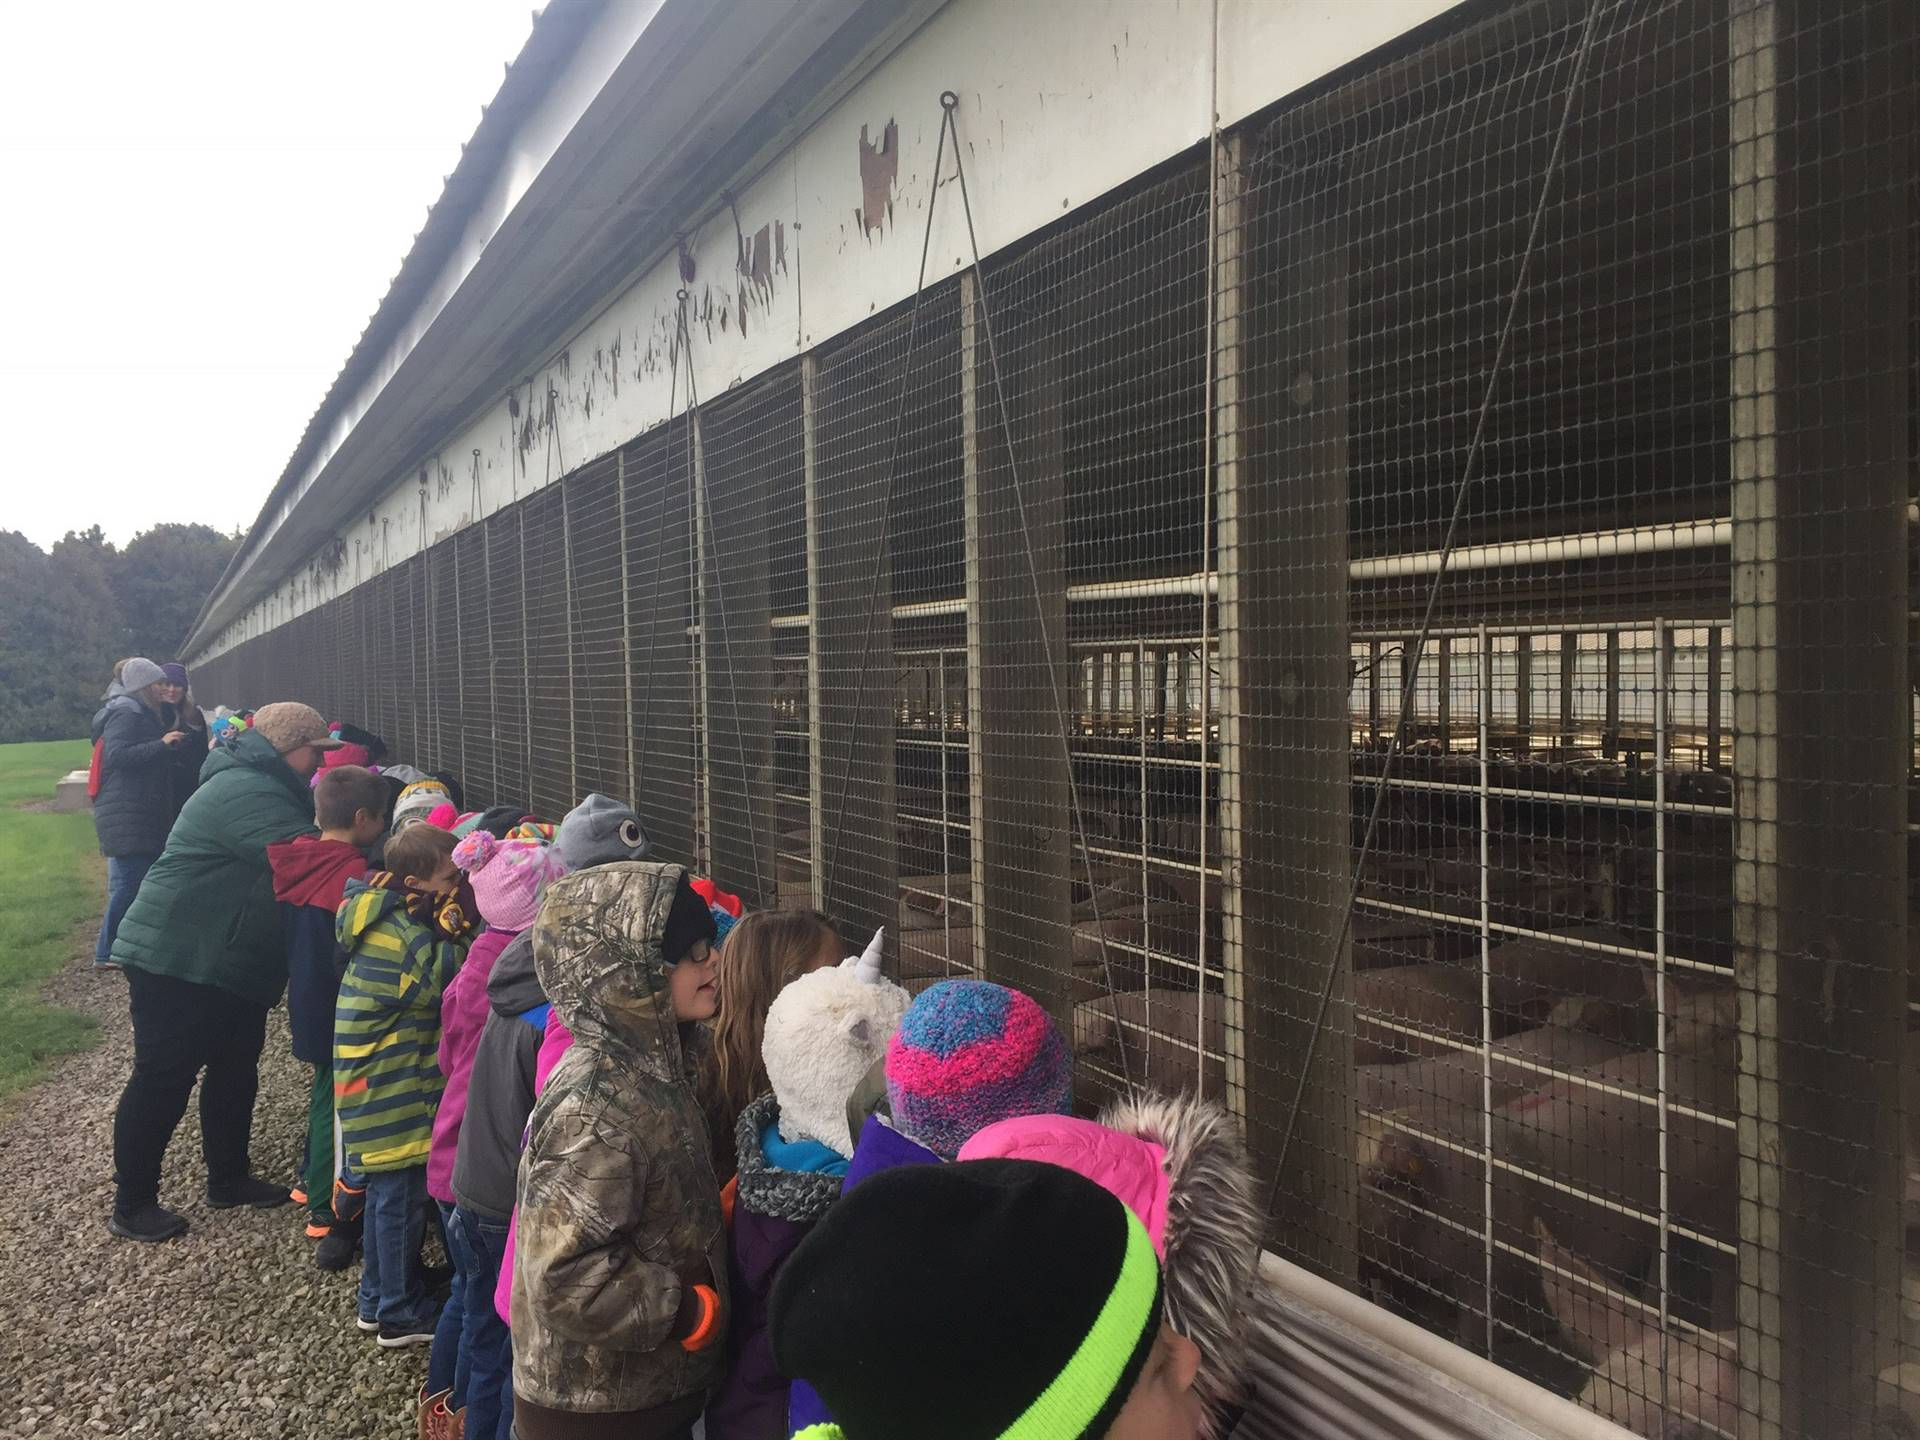 first grade students lined up to view livestock on a farm